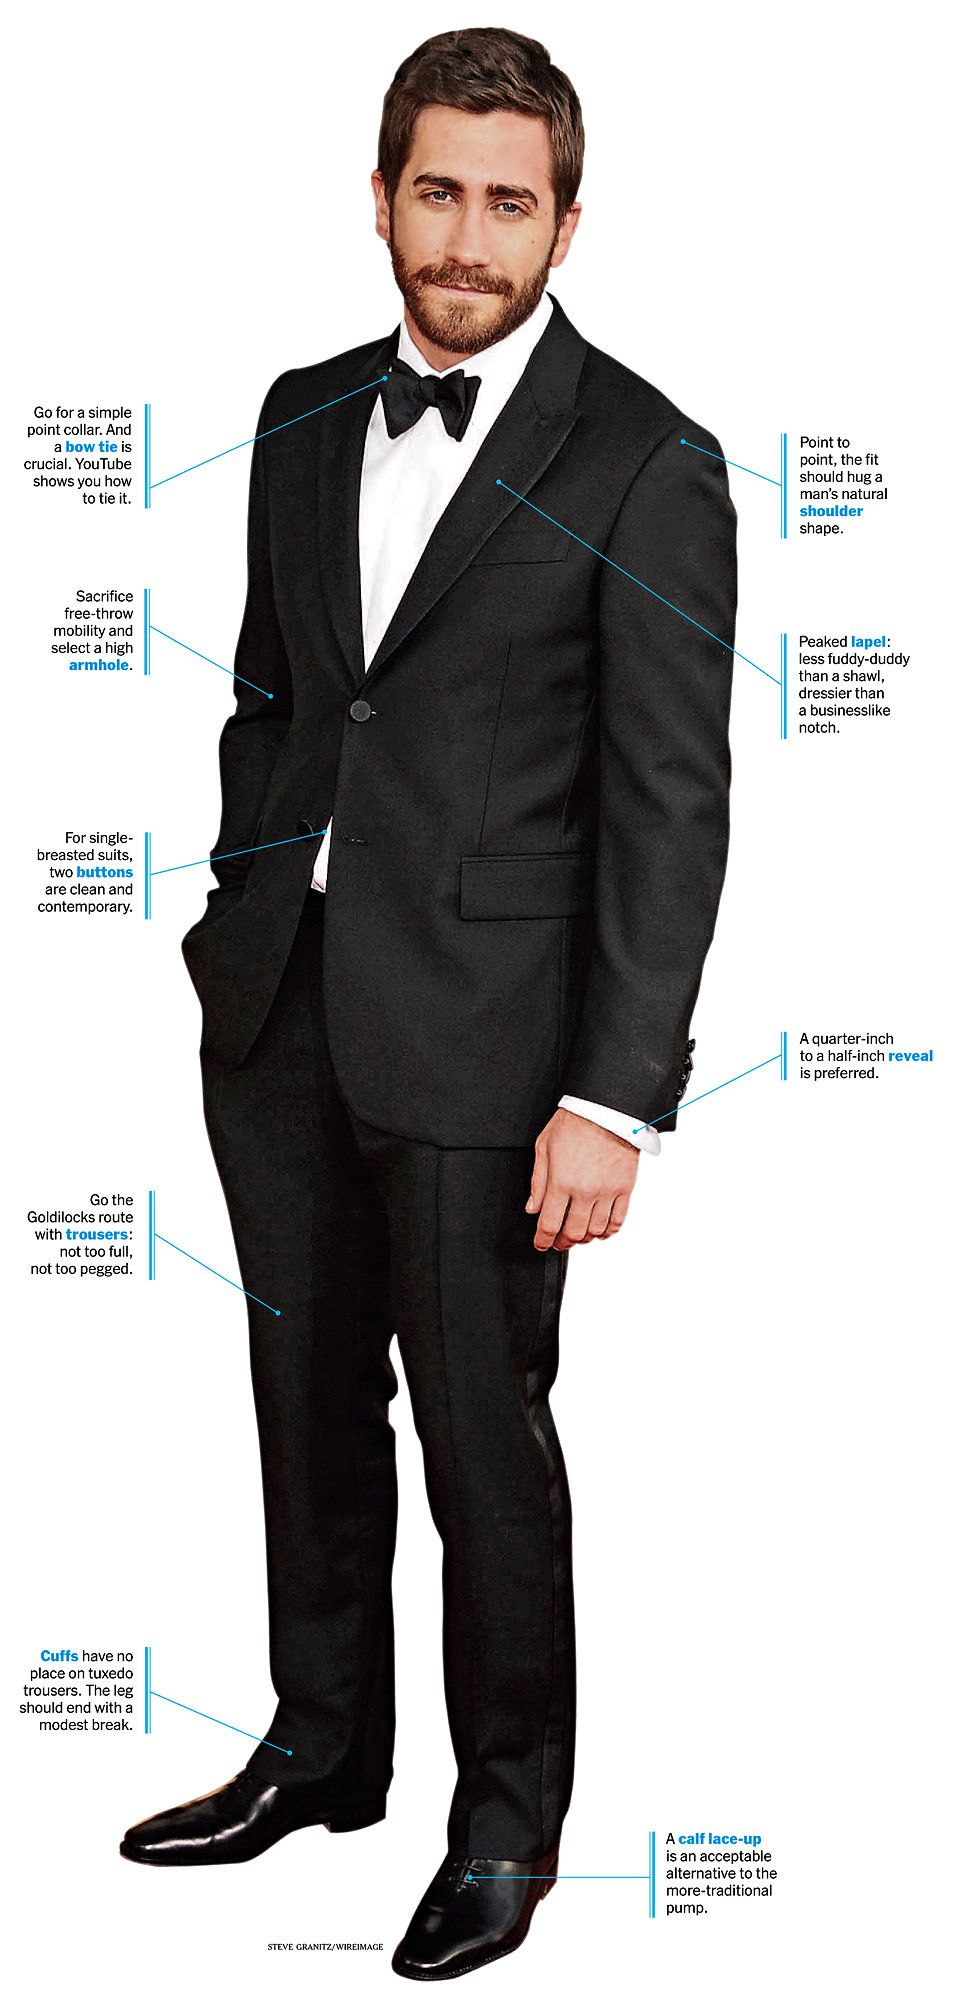 c9c071df4a9ab Formal-Wear Tips From Men's Fashion Experts - The New York Times ...